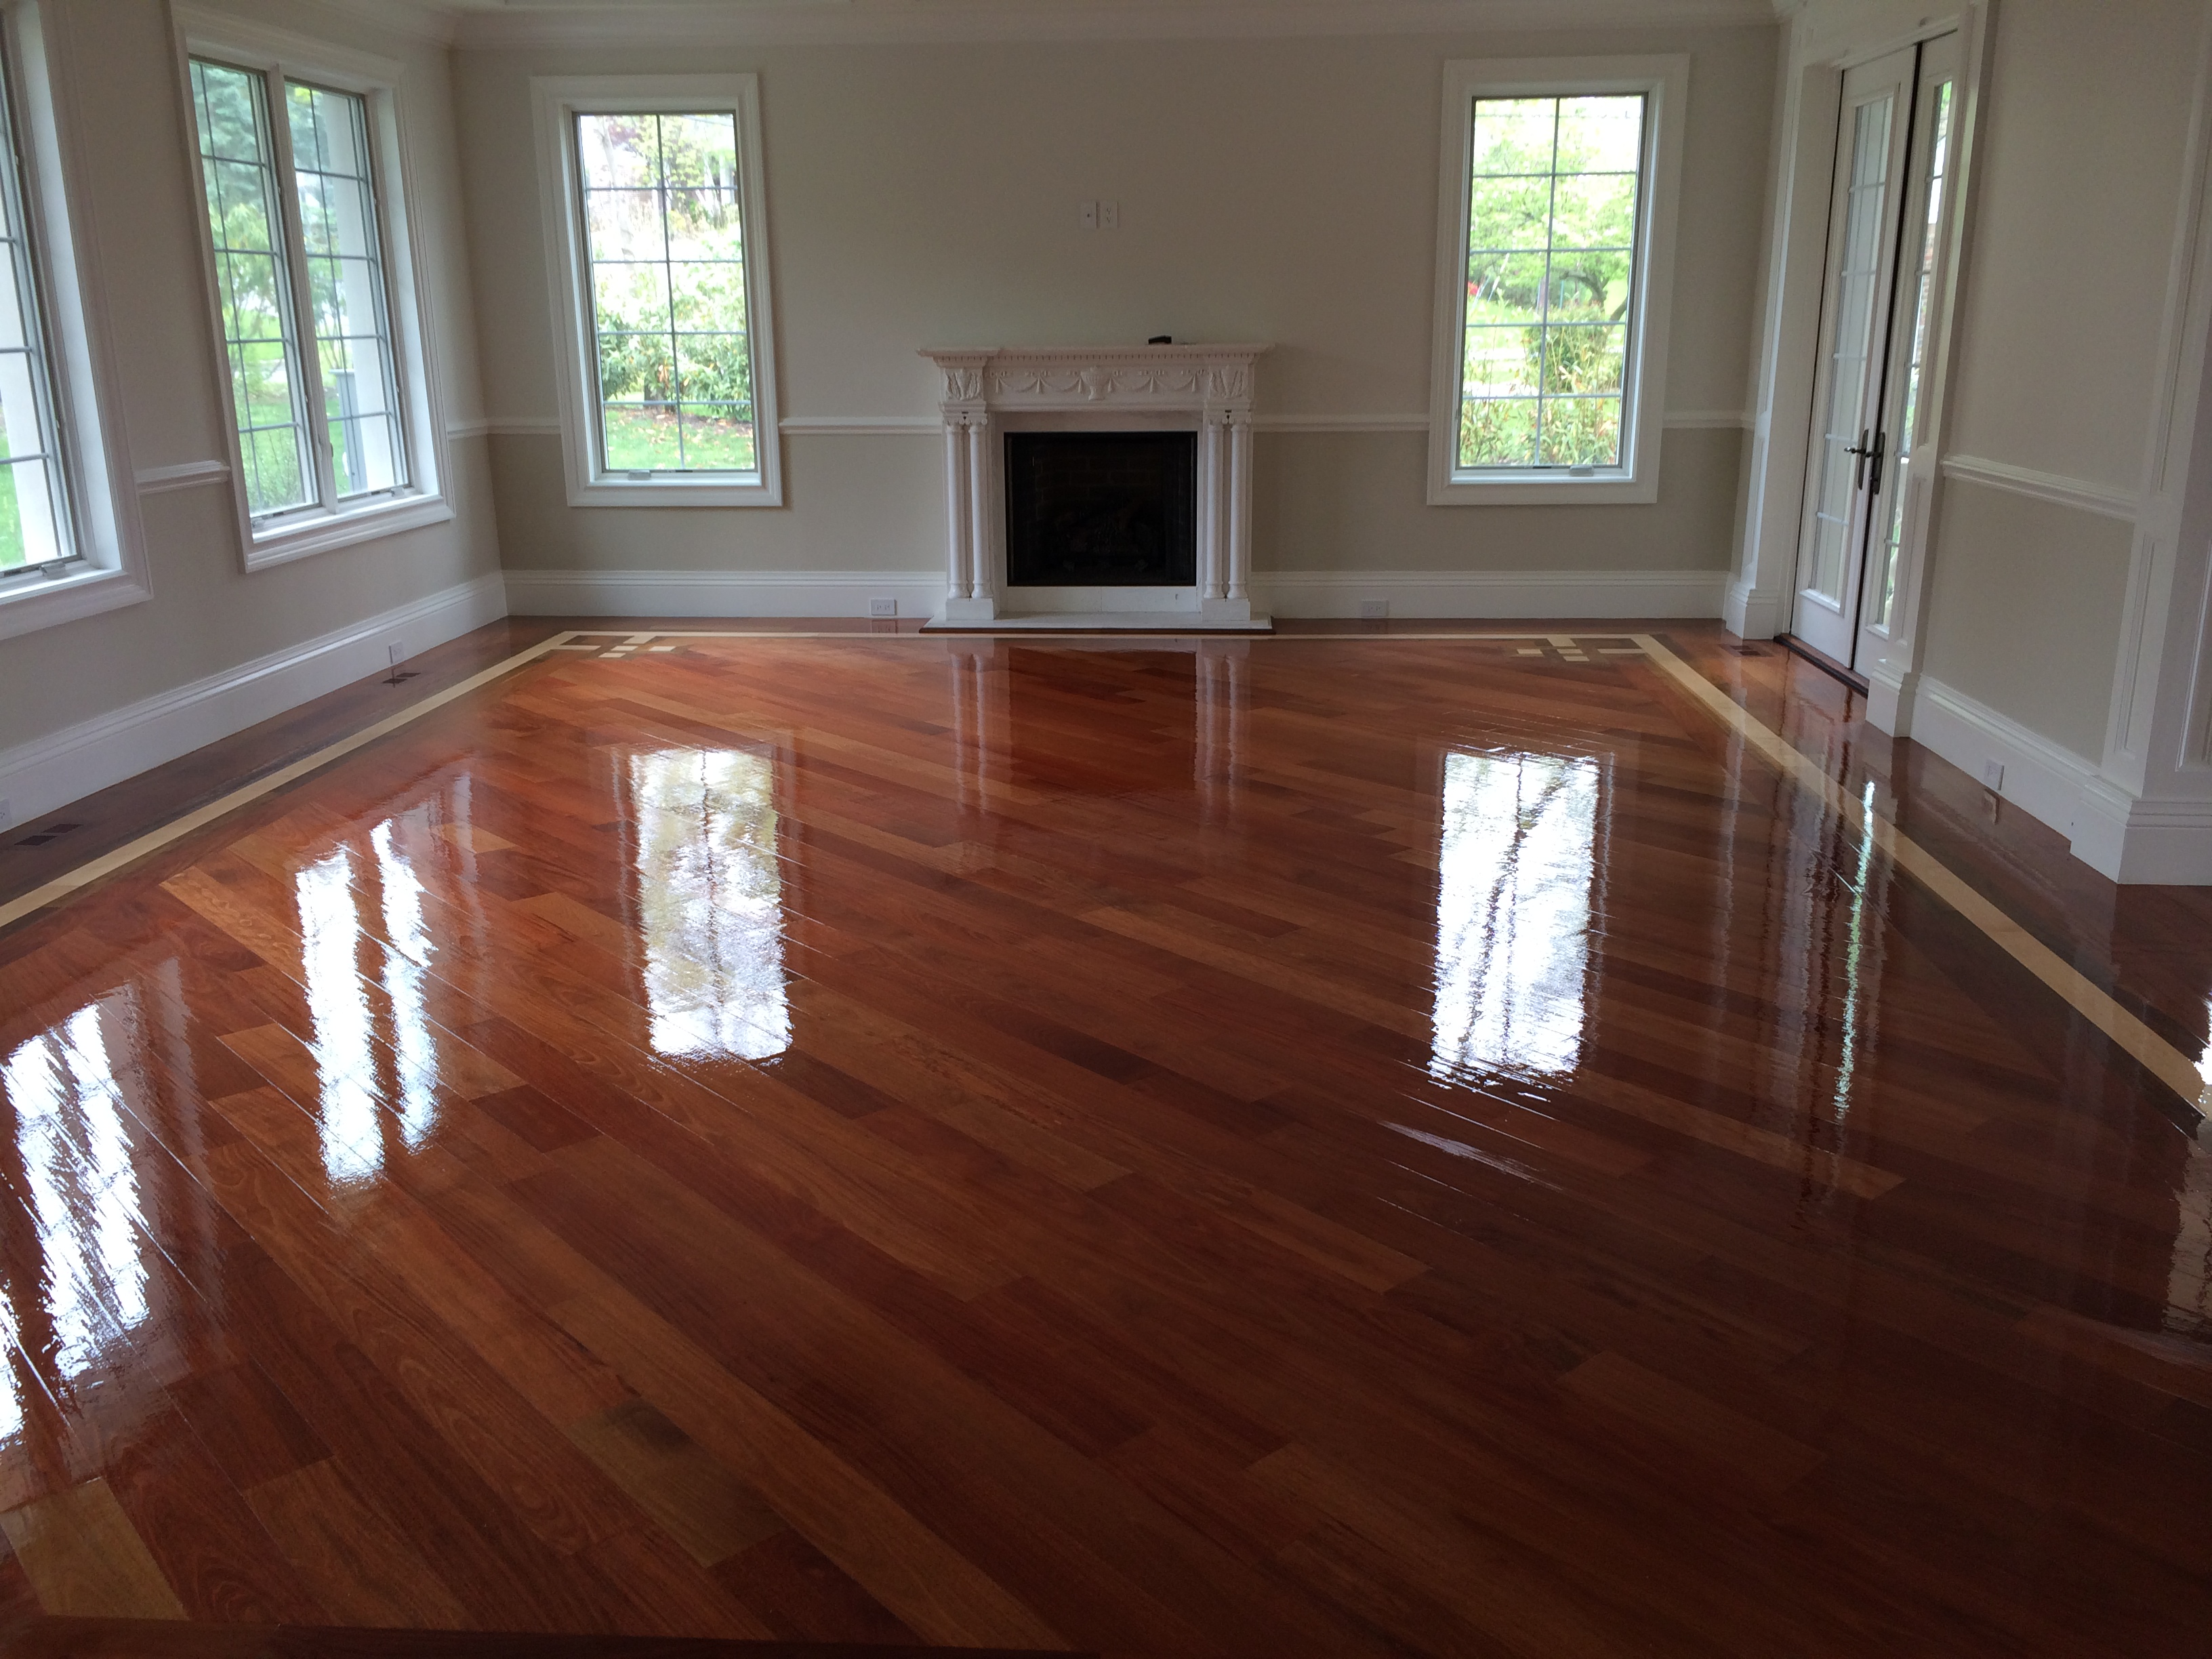 Wood Floor Discount Hardwood Floors